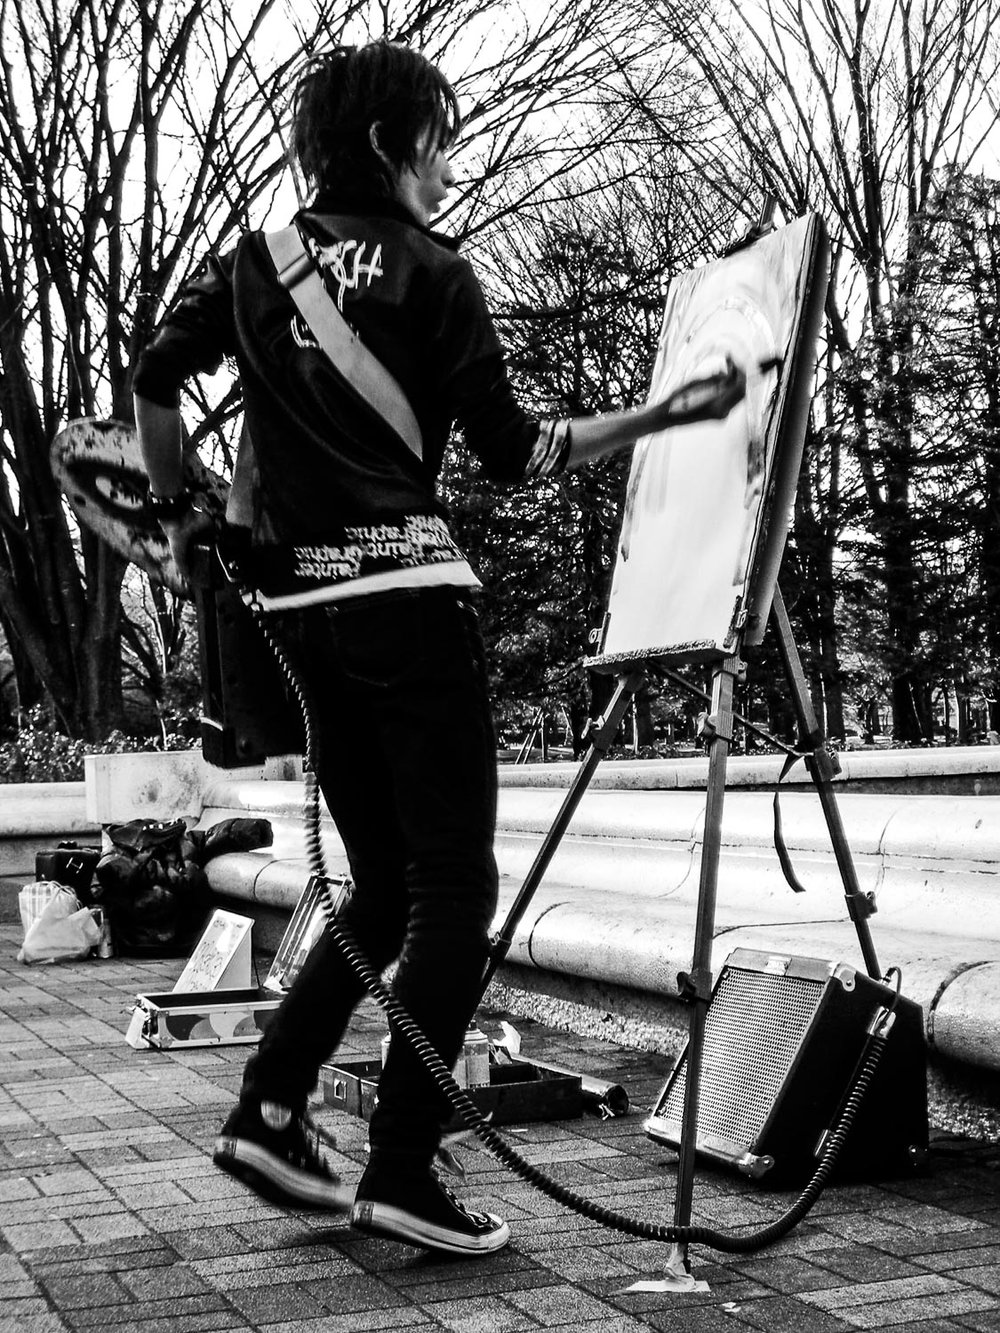 Artist-Painting-Music-Dancing-Japan-Park-Durazo-Photography.jpg